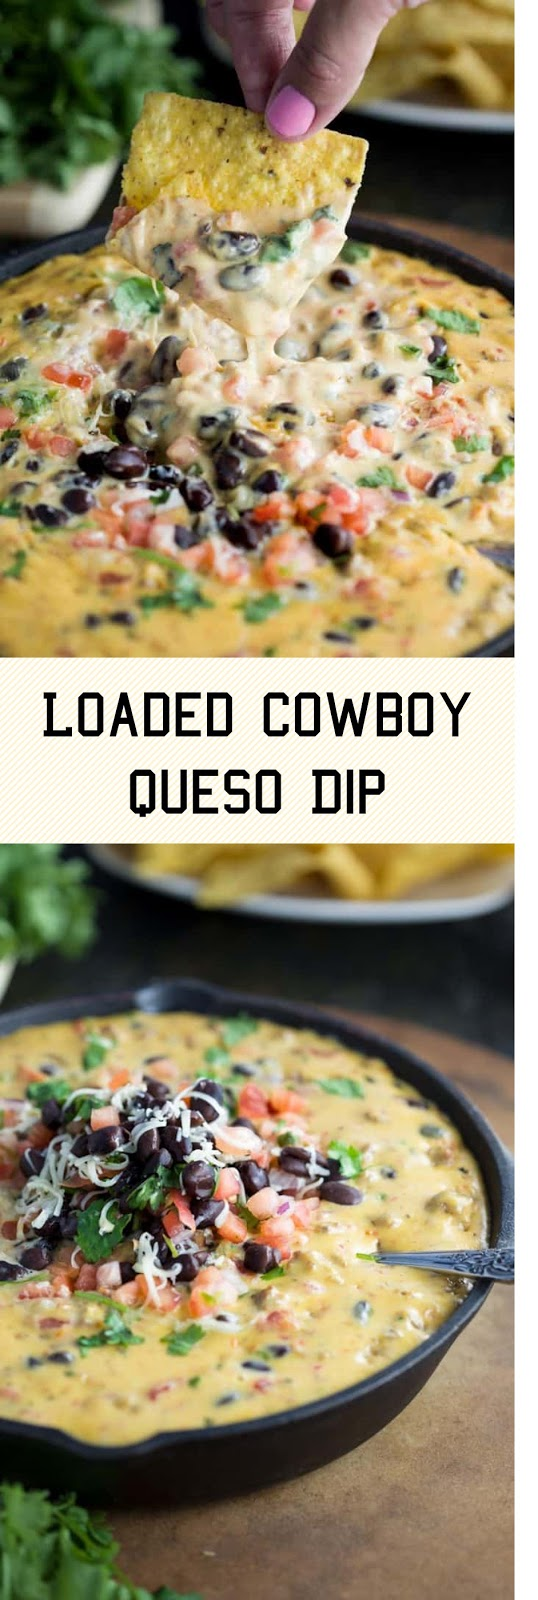 Loaded Cowboy Queso Dip